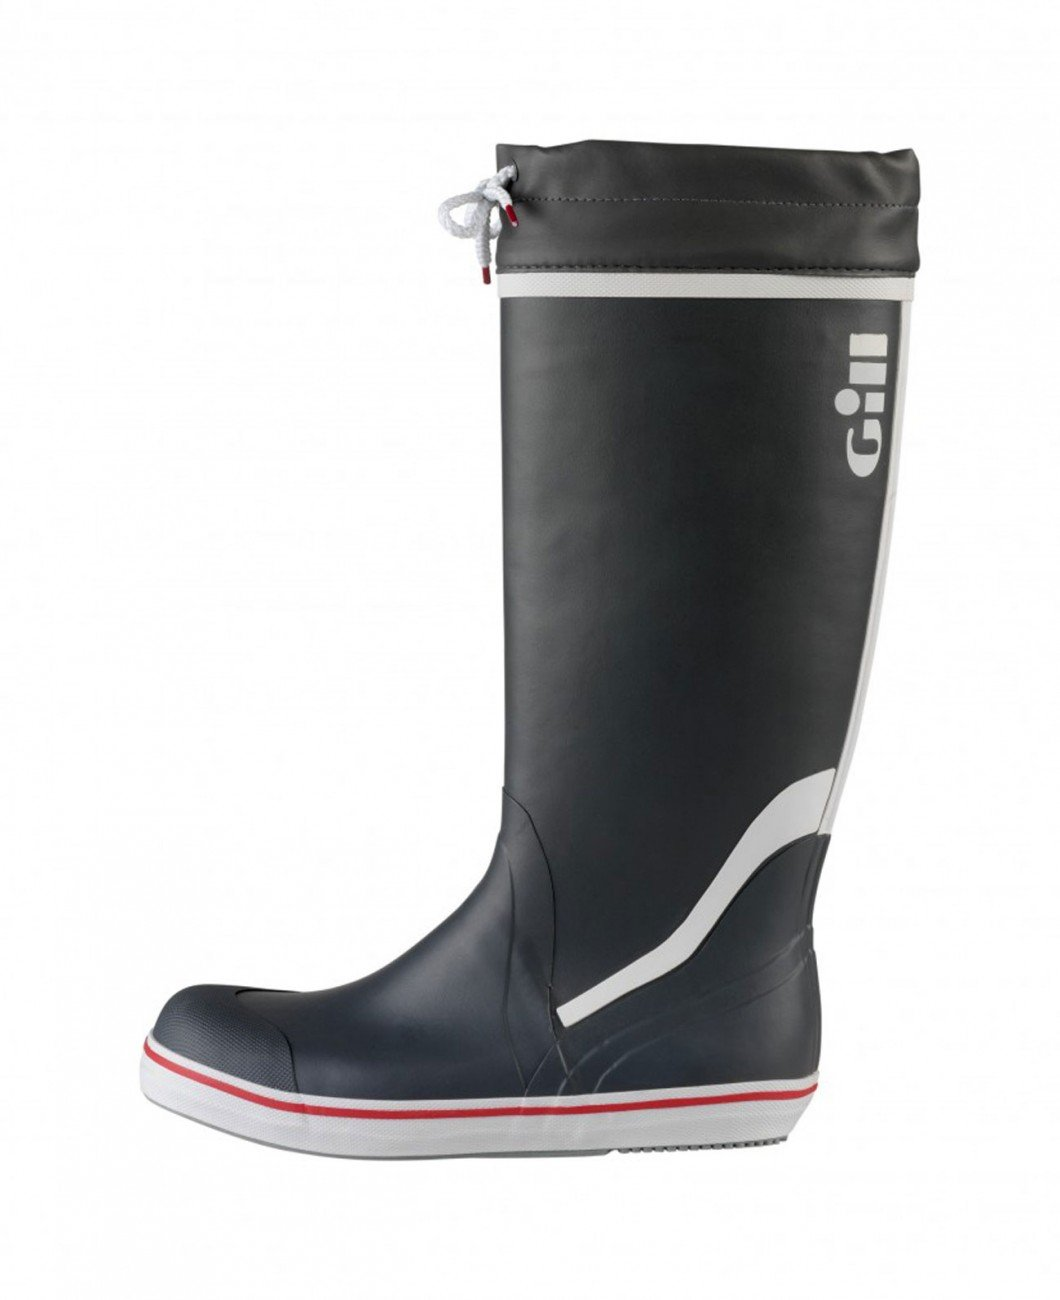 Gill Tall Yachting Boot 909 Shoe Sizes UK - 8